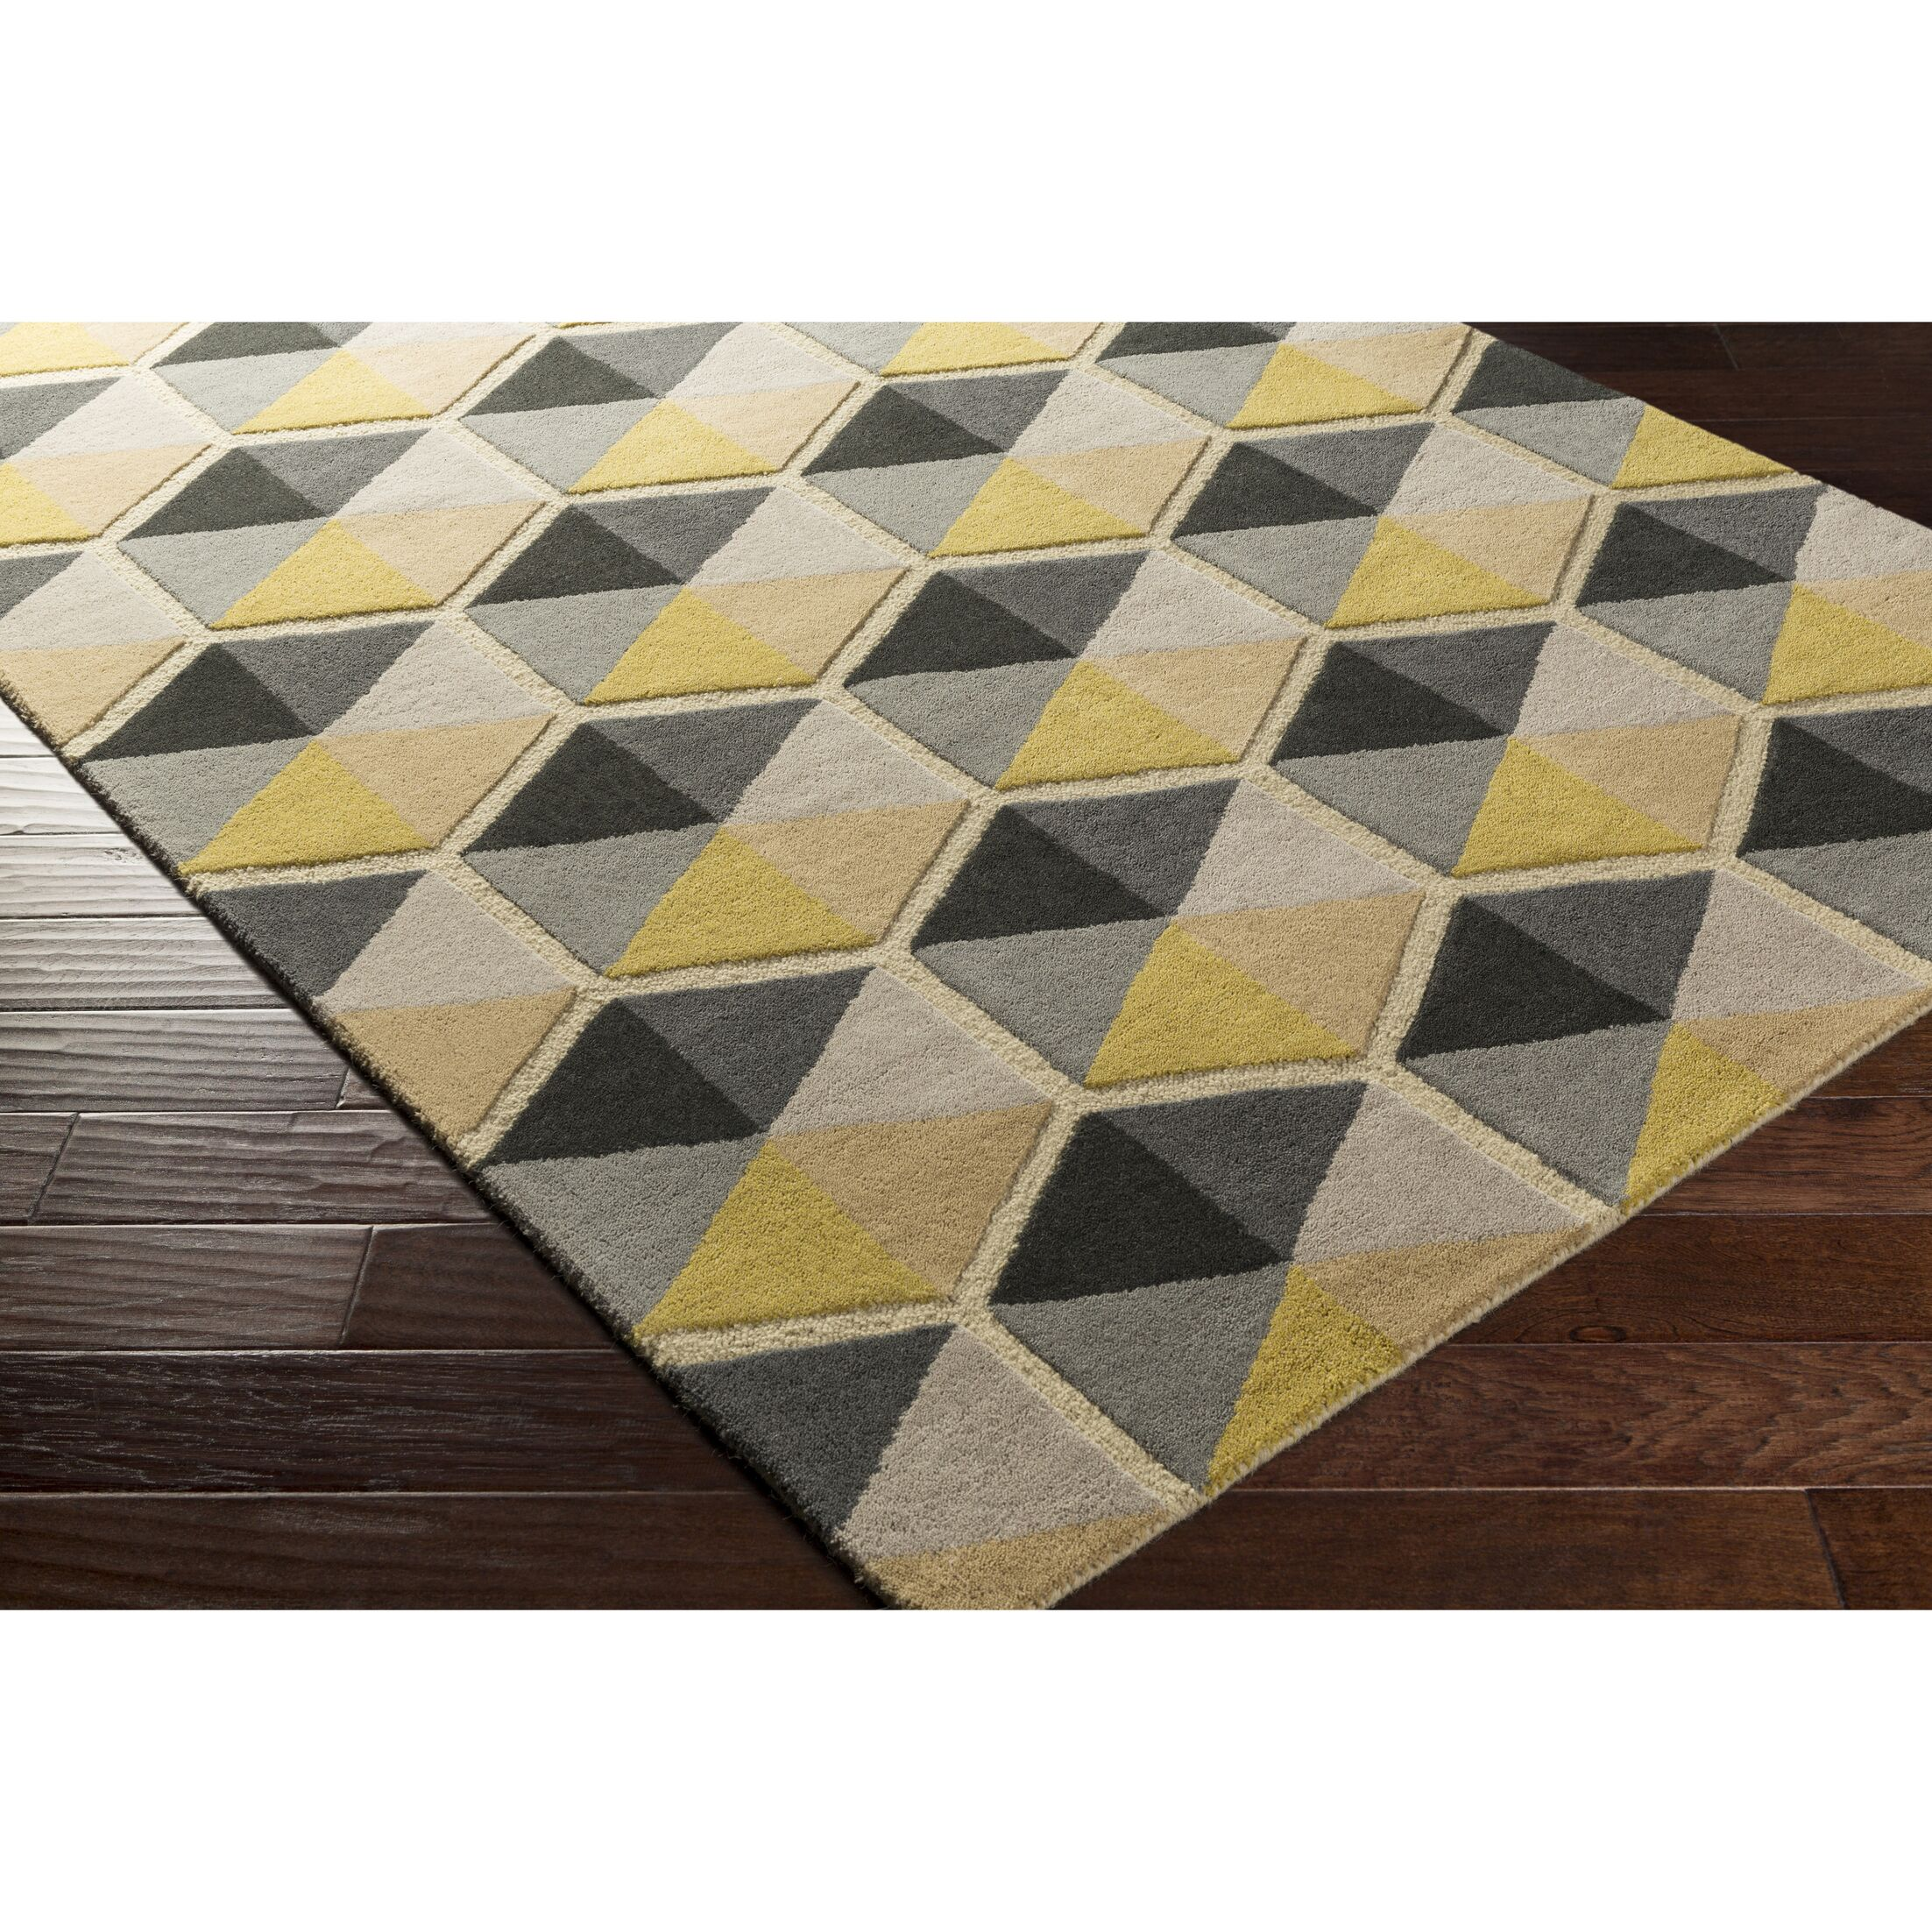 Nida Hand-Tufted Neutral/Brown Area Rug Rug Size: Rectangle 9' x 13'